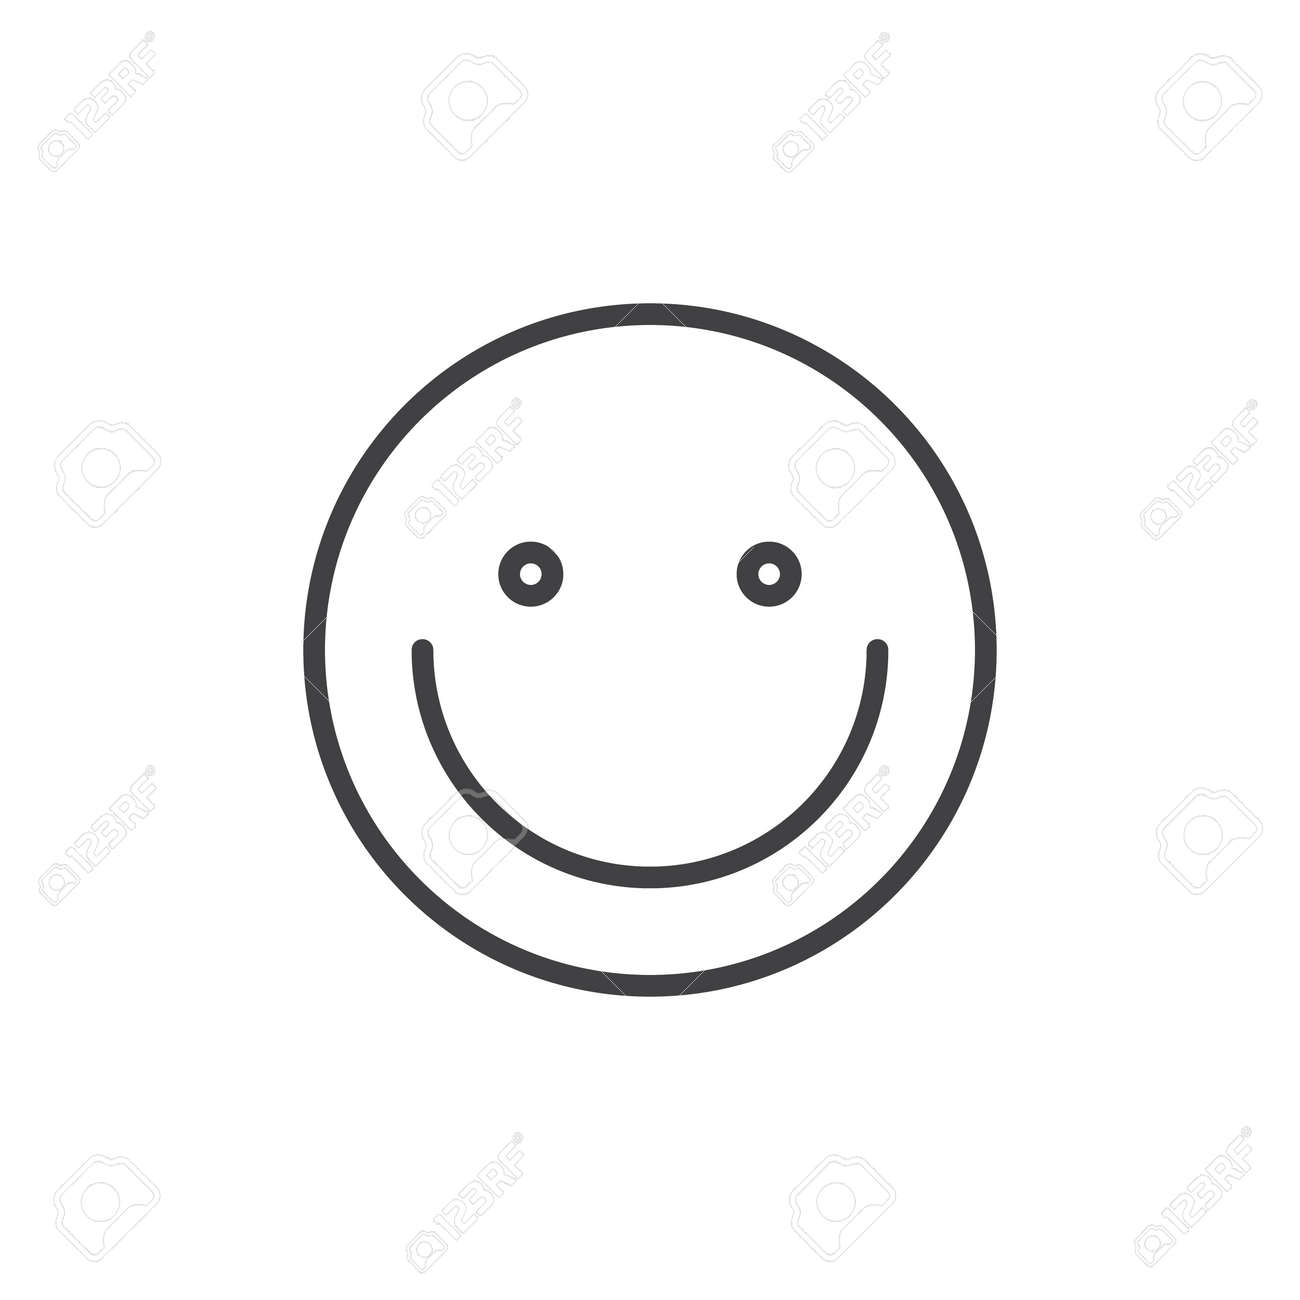 Smiling Face Emoticon Line Icon Outline Vector Sign Linear Royalty Free Cliparts Vectors And Stock Illustration Image 89142380